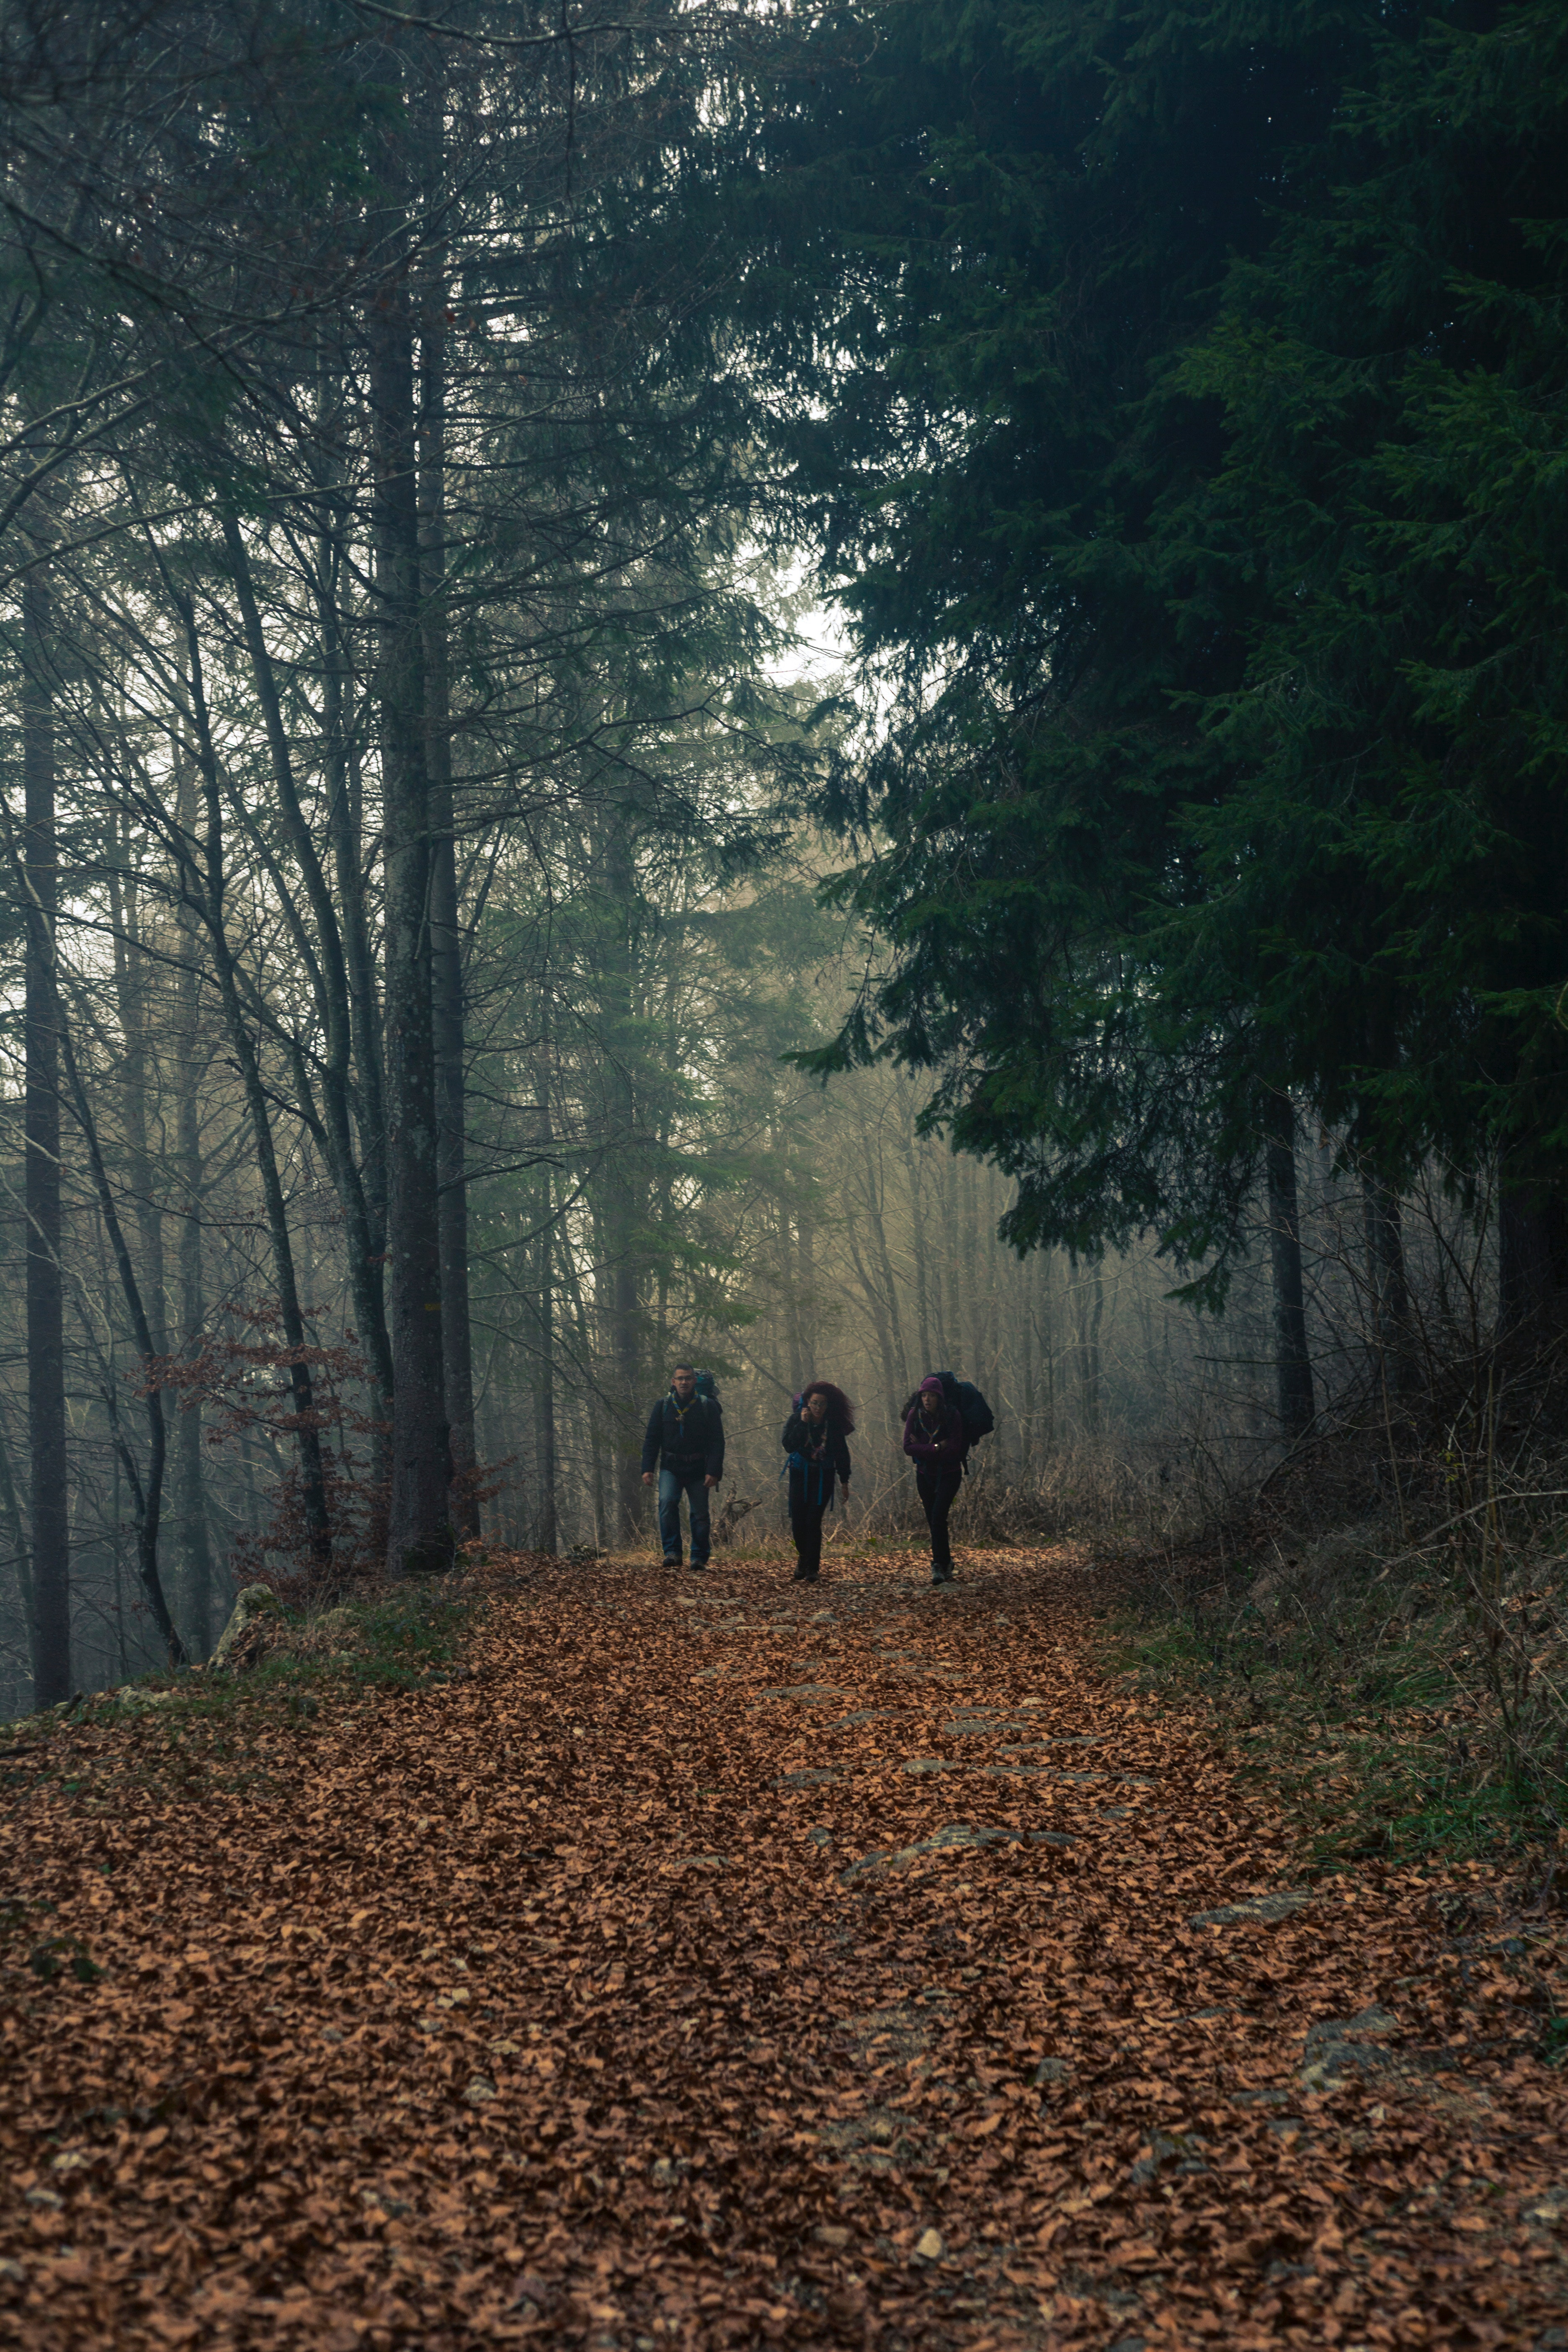 Three person walks on dried leaf covered pathway surrounded by trees photo